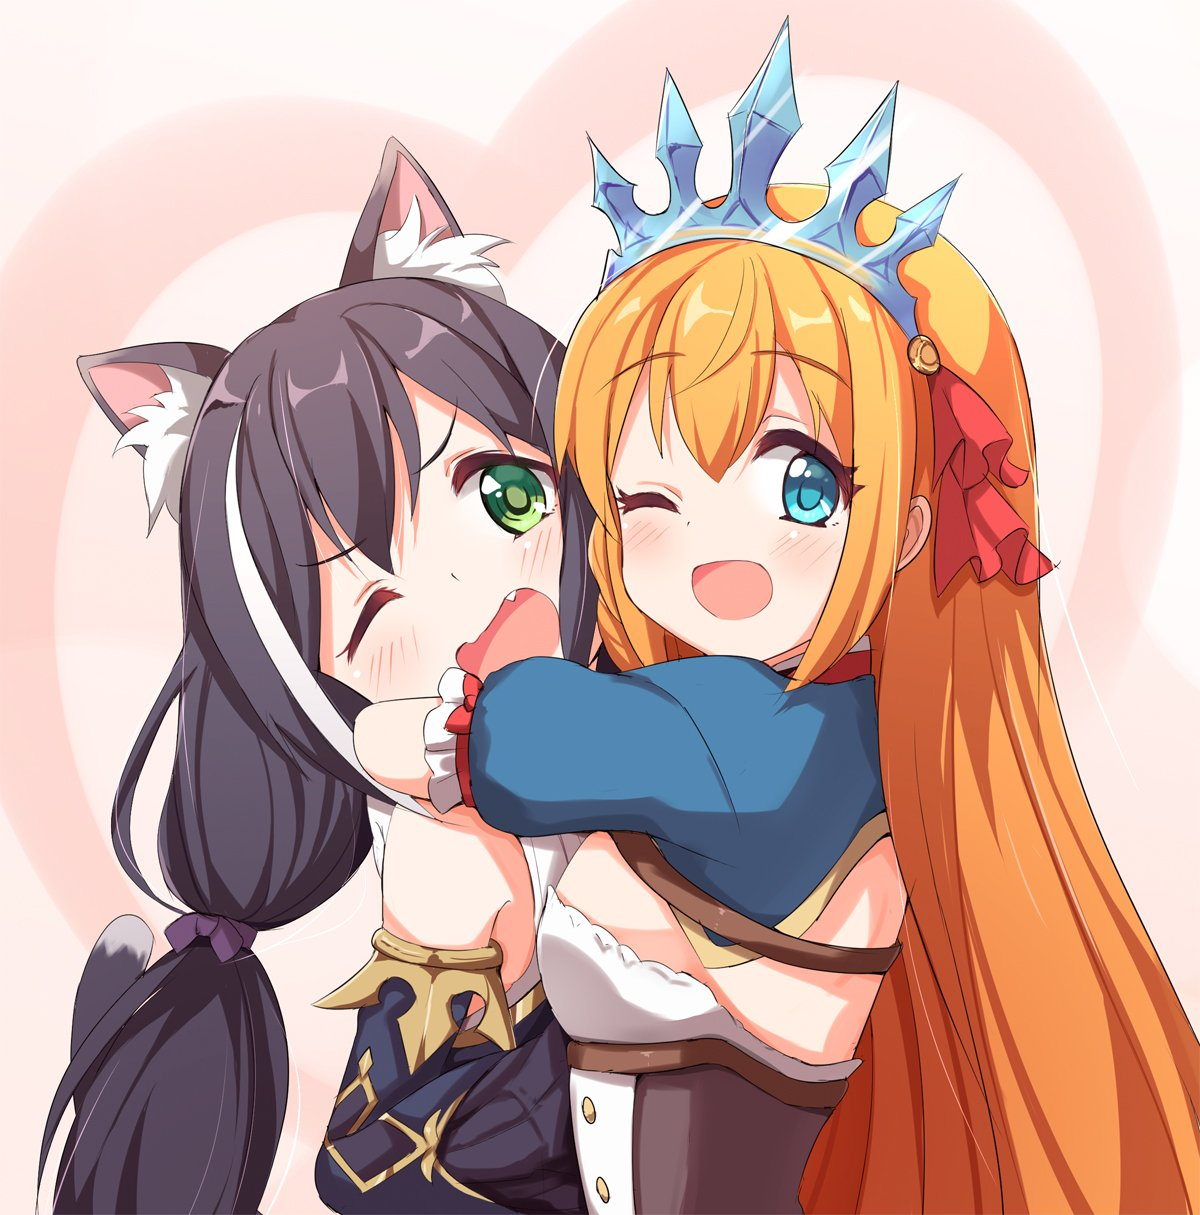 2girls ;d ame. animal_ear_fluff animal_ears bangs bare_shoulders black_hair blue_eyes blue_sleeves blush breasts brown_hair cat_ears commentary_request detached_sleeves eyebrows_visible_through_hair fang green_eyes hair_between_eyes heart highres hug kyaru_(princess_connect) long_hair long_sleeves multicolored_hair multiple_girls one_eye_closed open_mouth pecorine princess_connect! princess_connect!_re:dive puffy_short_sleeves puffy_sleeves short_sleeves small_breasts smile streaked_hair tiara very_long_hair white_hair